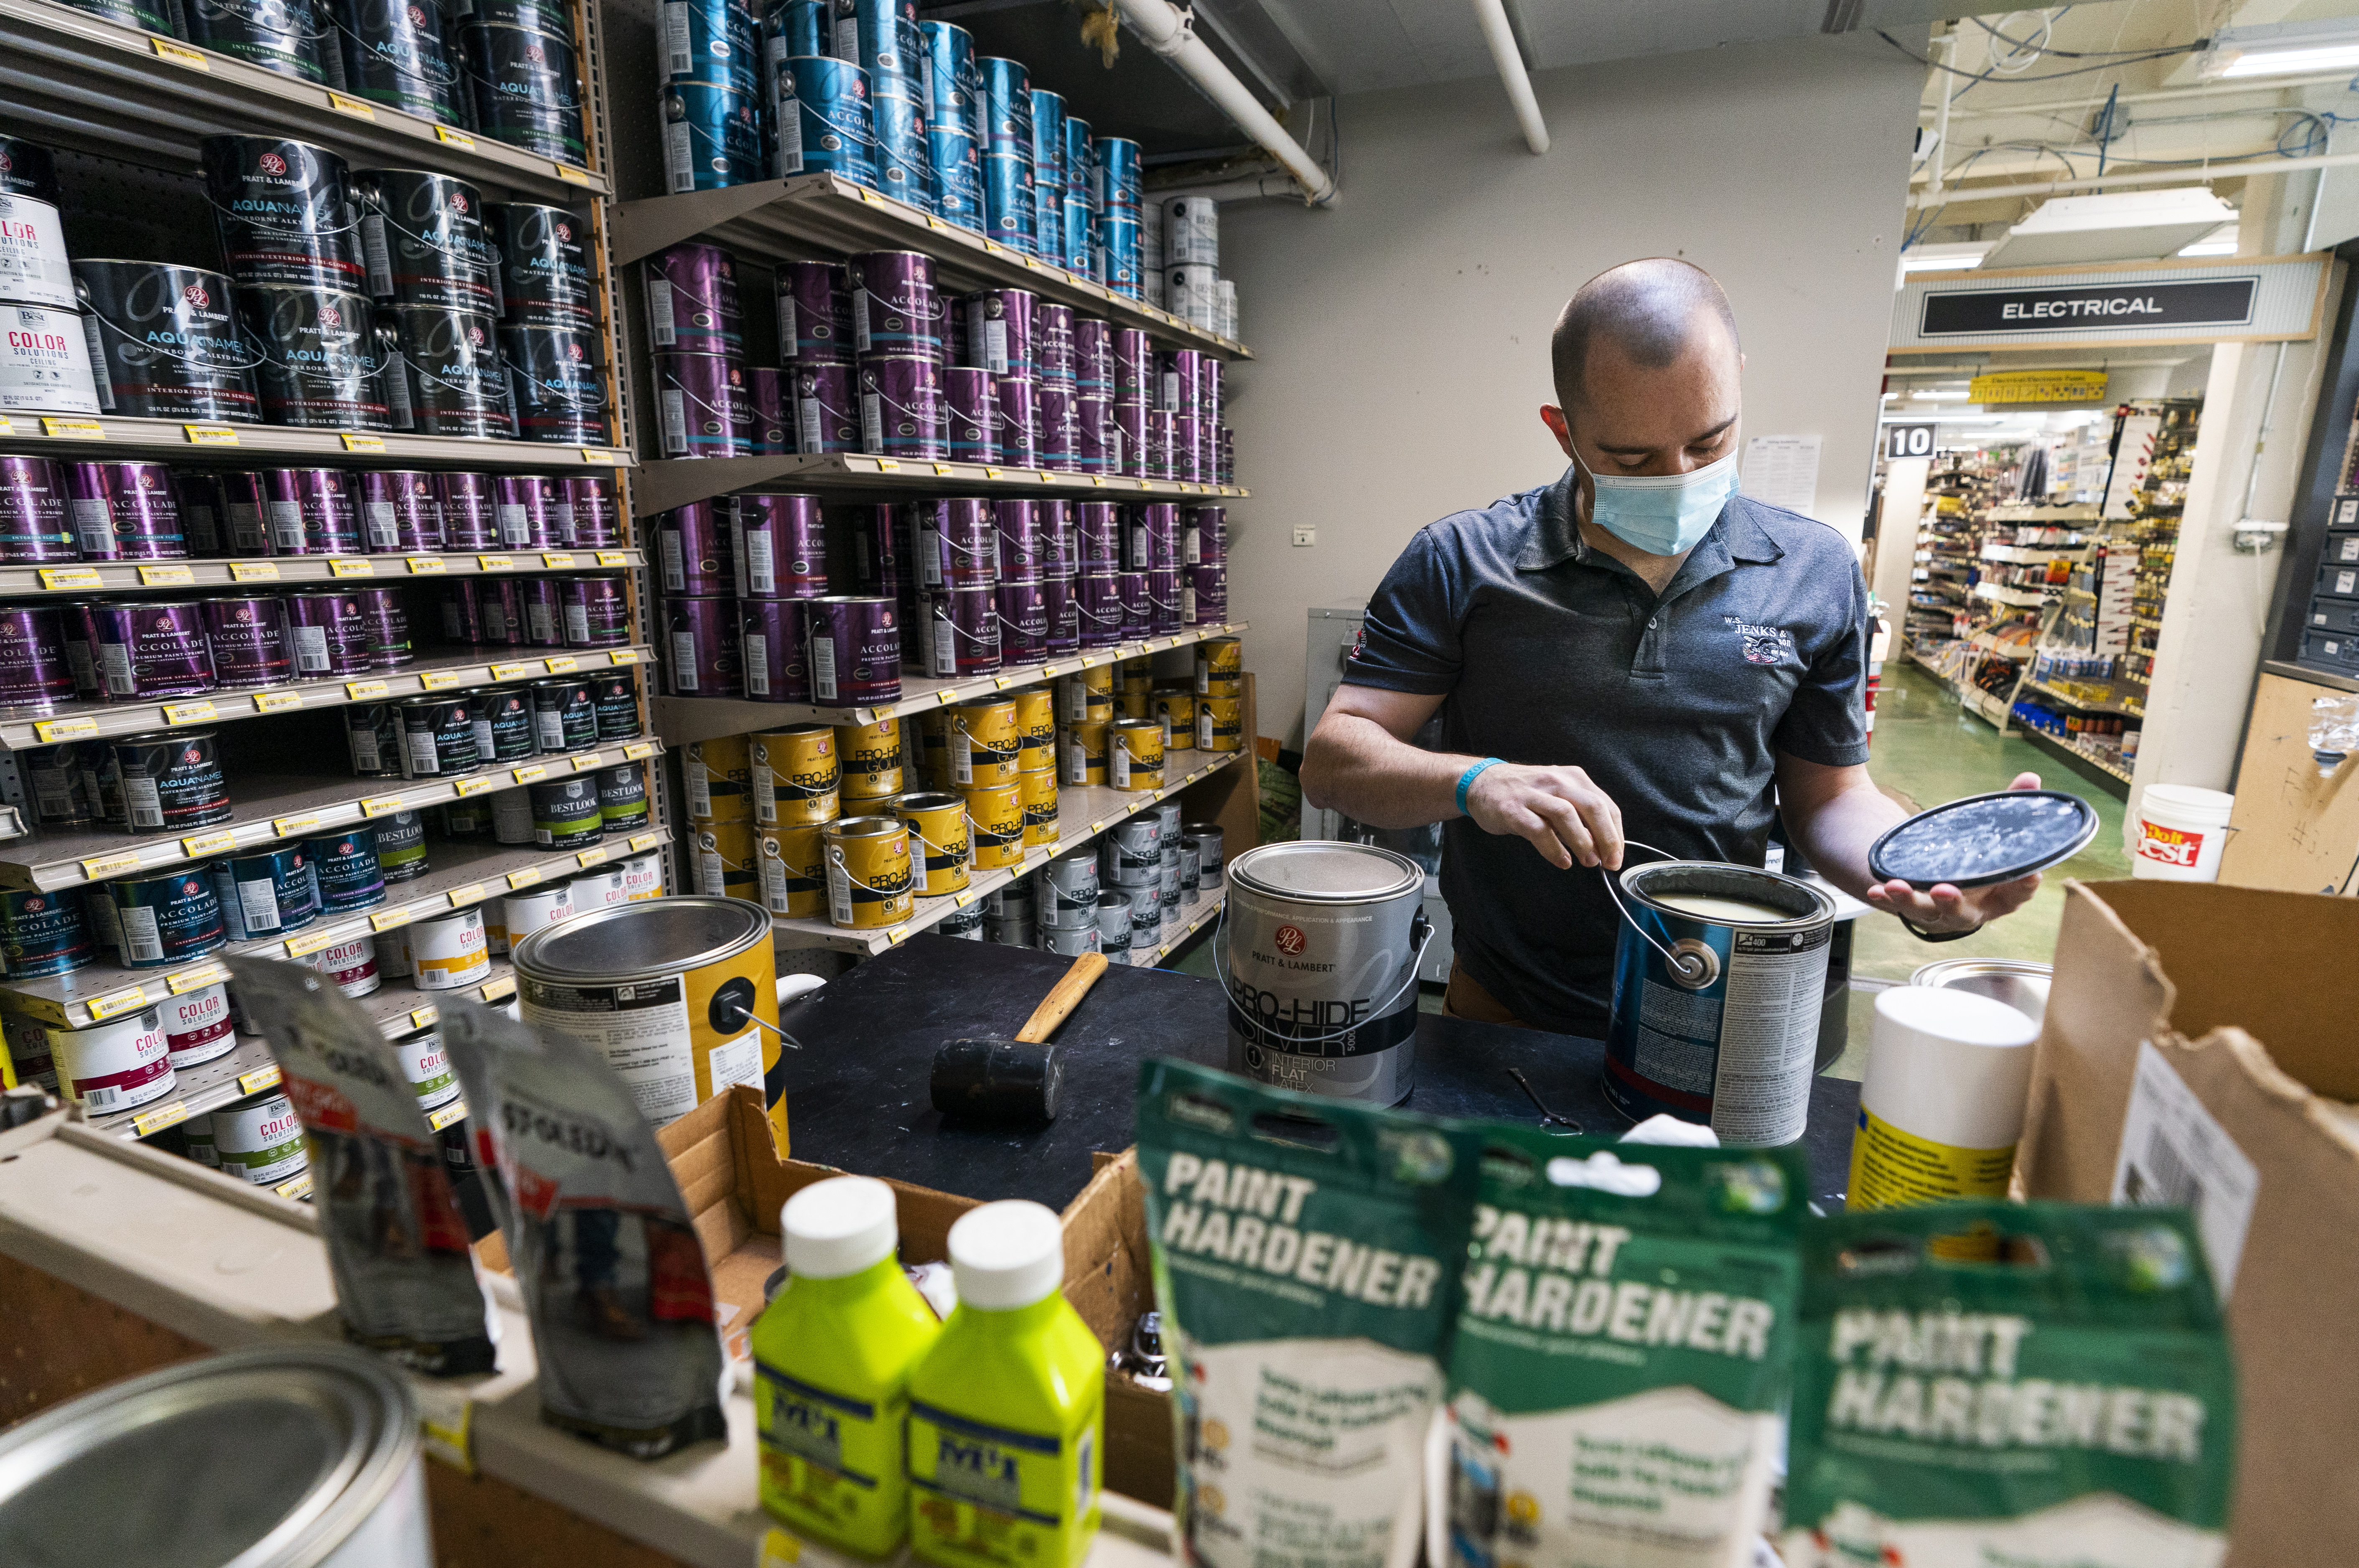 Billy Wommack, purchasing director at the W.S. Jenks & Sons hardware, opens a gallon of paint at the mixing station of the hardware store's paint department. Paint is among the goods costing more because of a shortage of chemicals used in manufacturing.